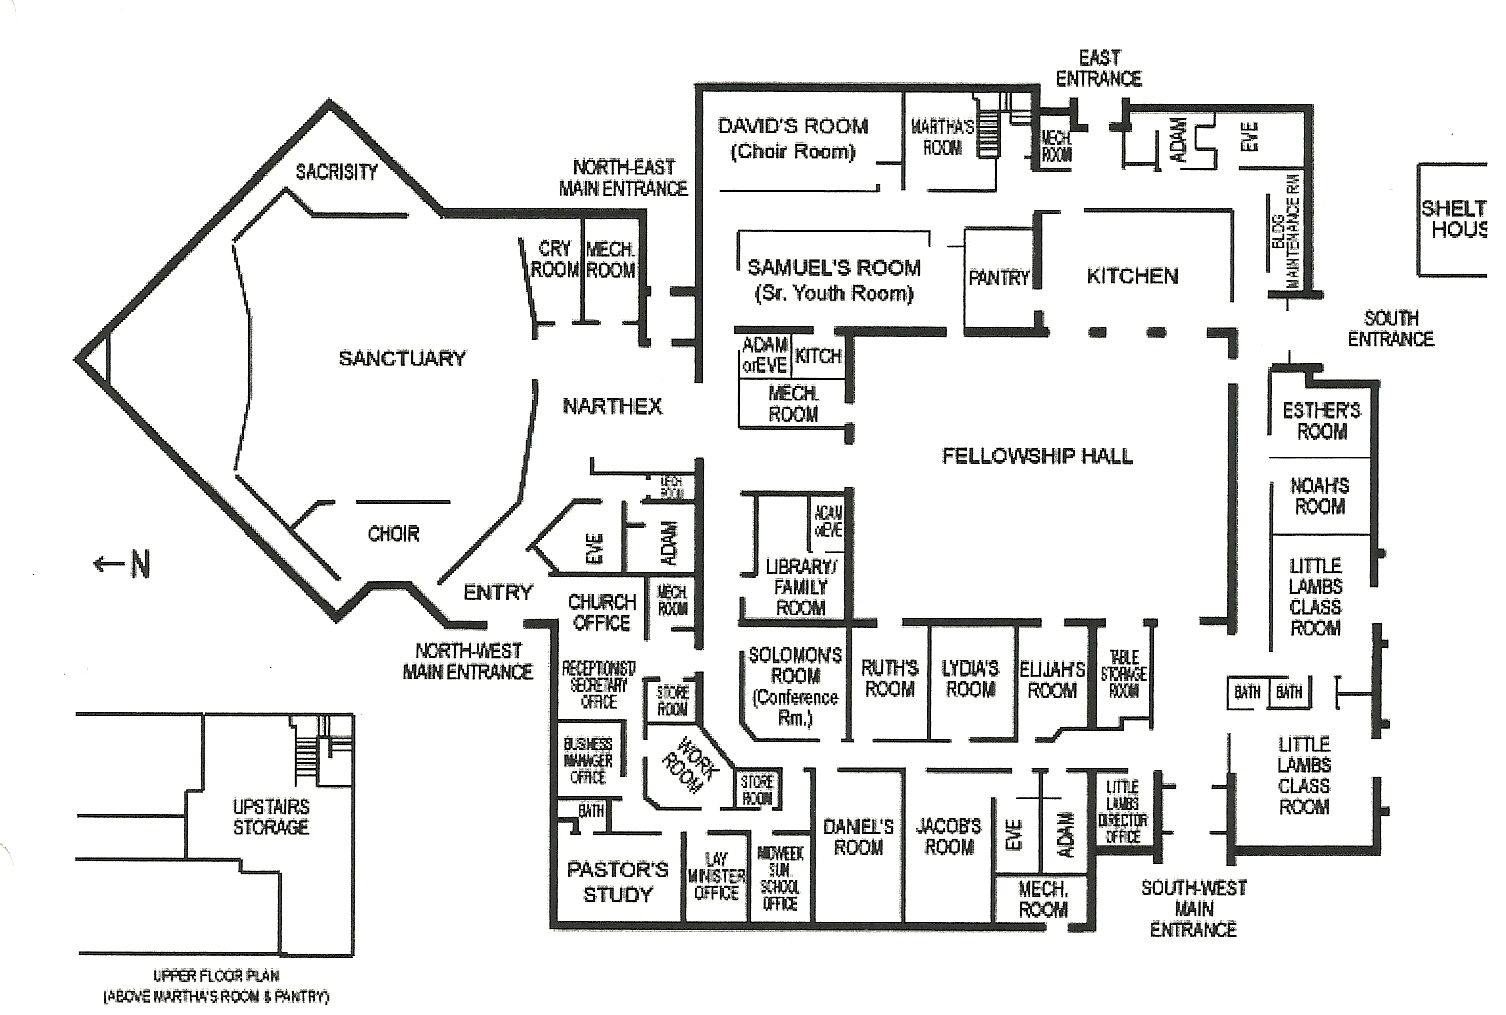 Preschool Room Arrangement Floor Plans Facility Christ The King Lutheran Church